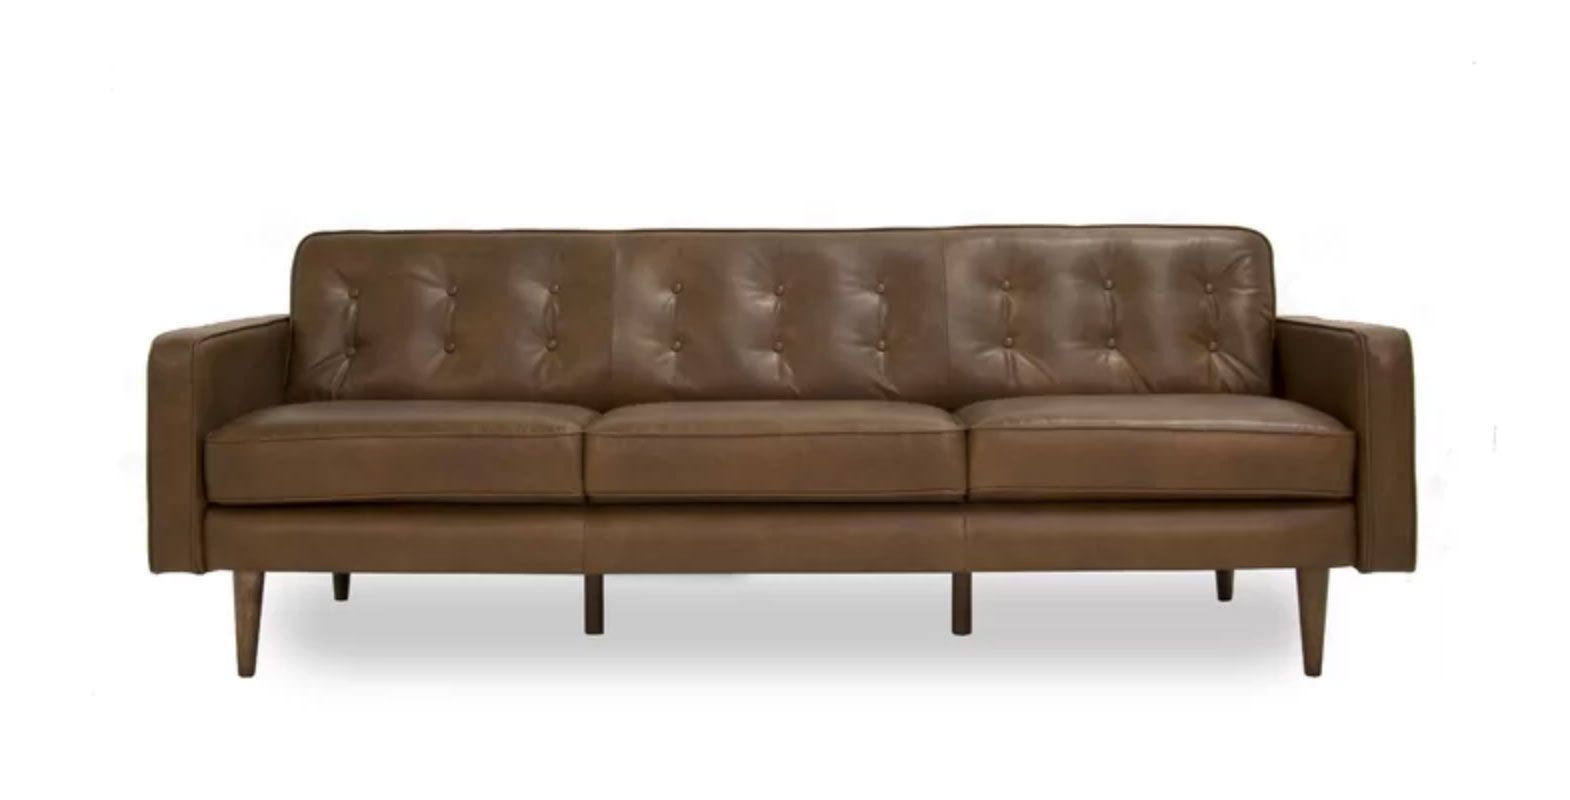 7 Affordable Leather Sofas Most With Free Shipping Modern